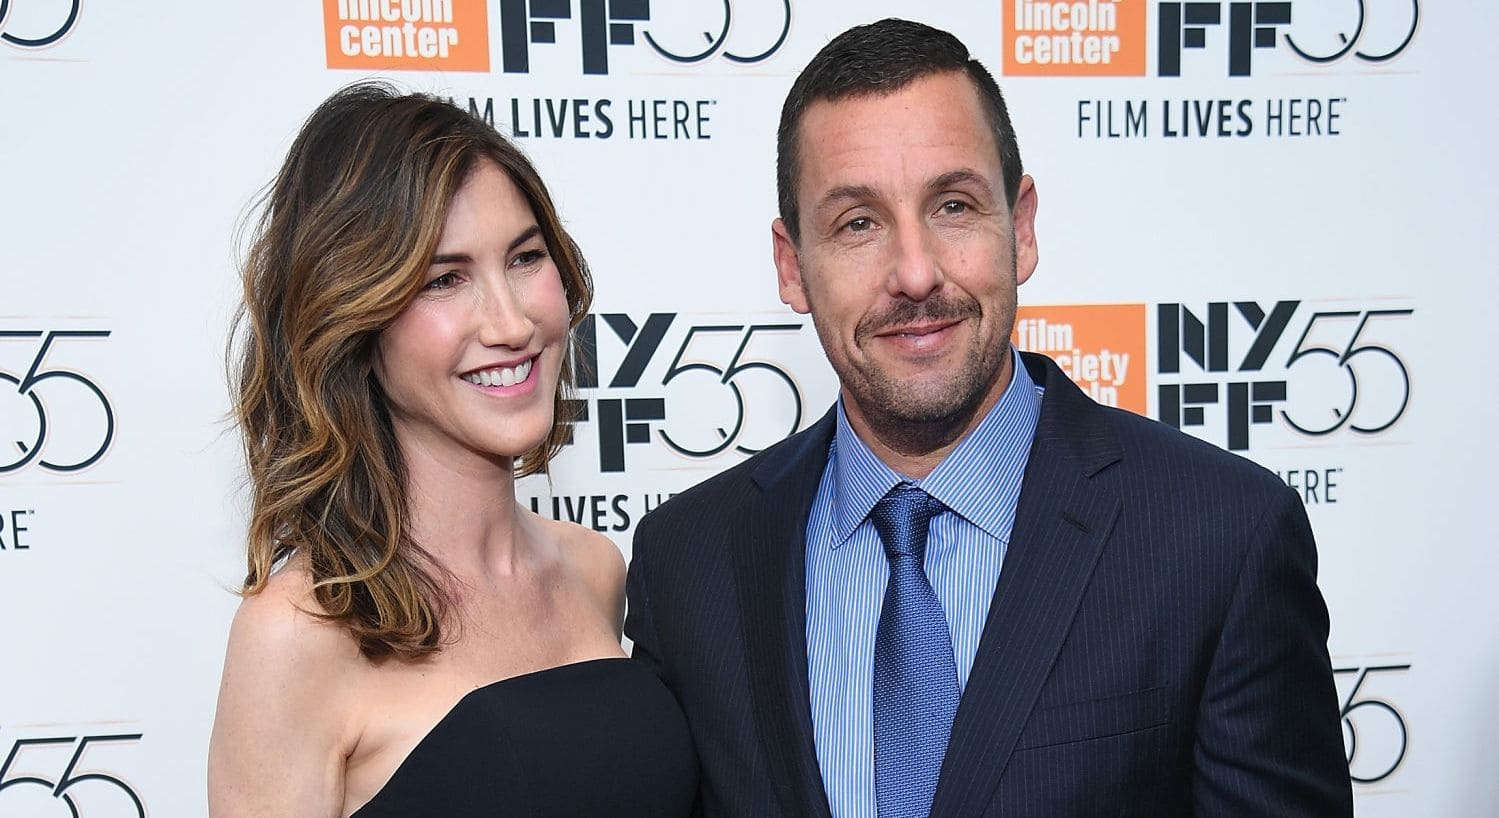 The untold truth of Adam Sandler's wife - Jackie Sandler ...